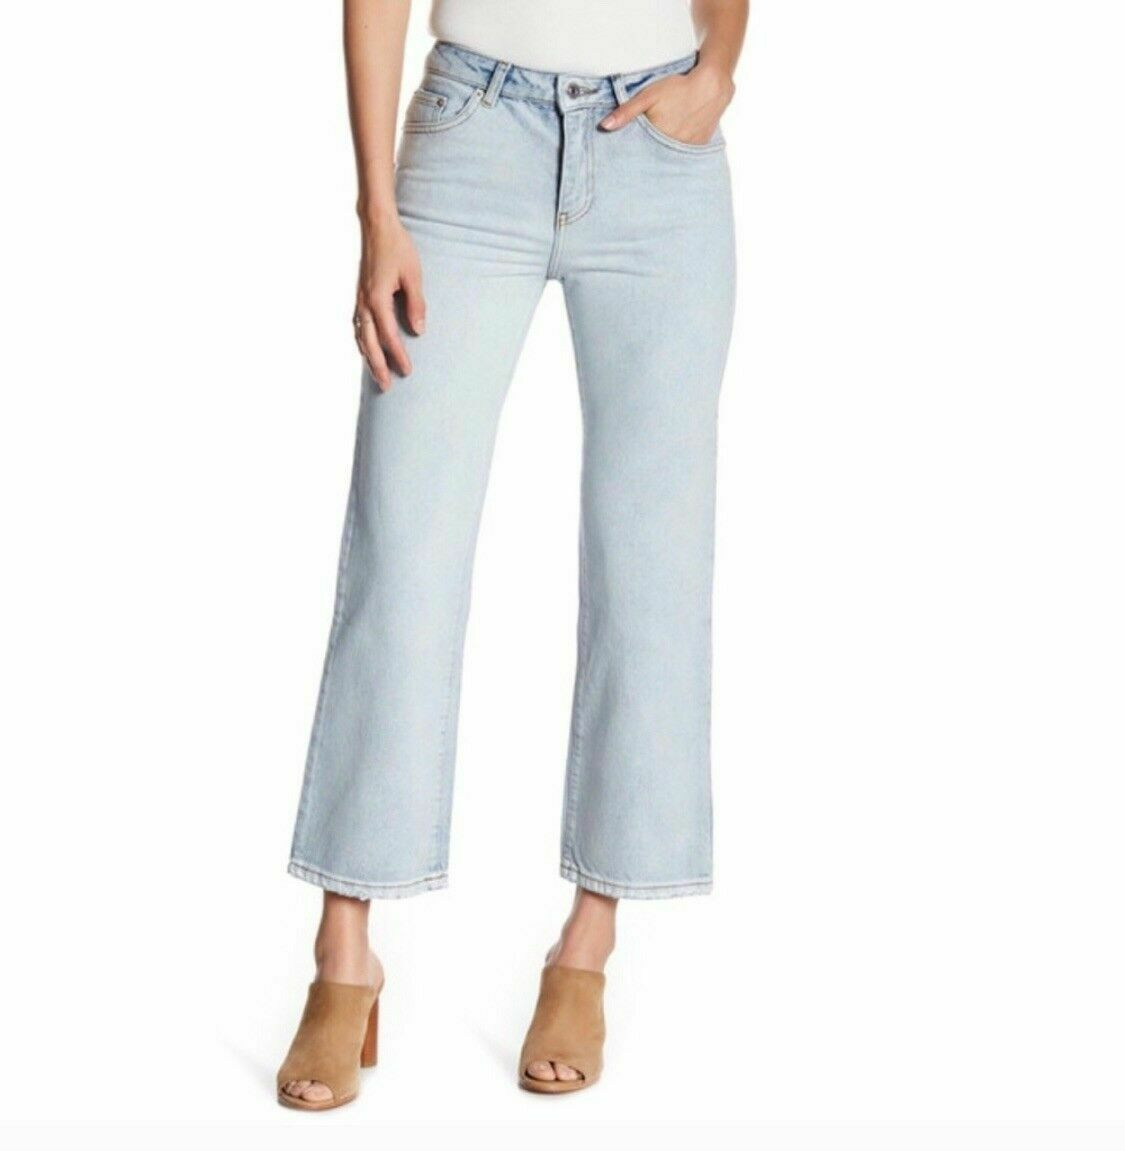 NWT SINCERELY JULES Women's Cropped Flare Jeans Size 29 NEW